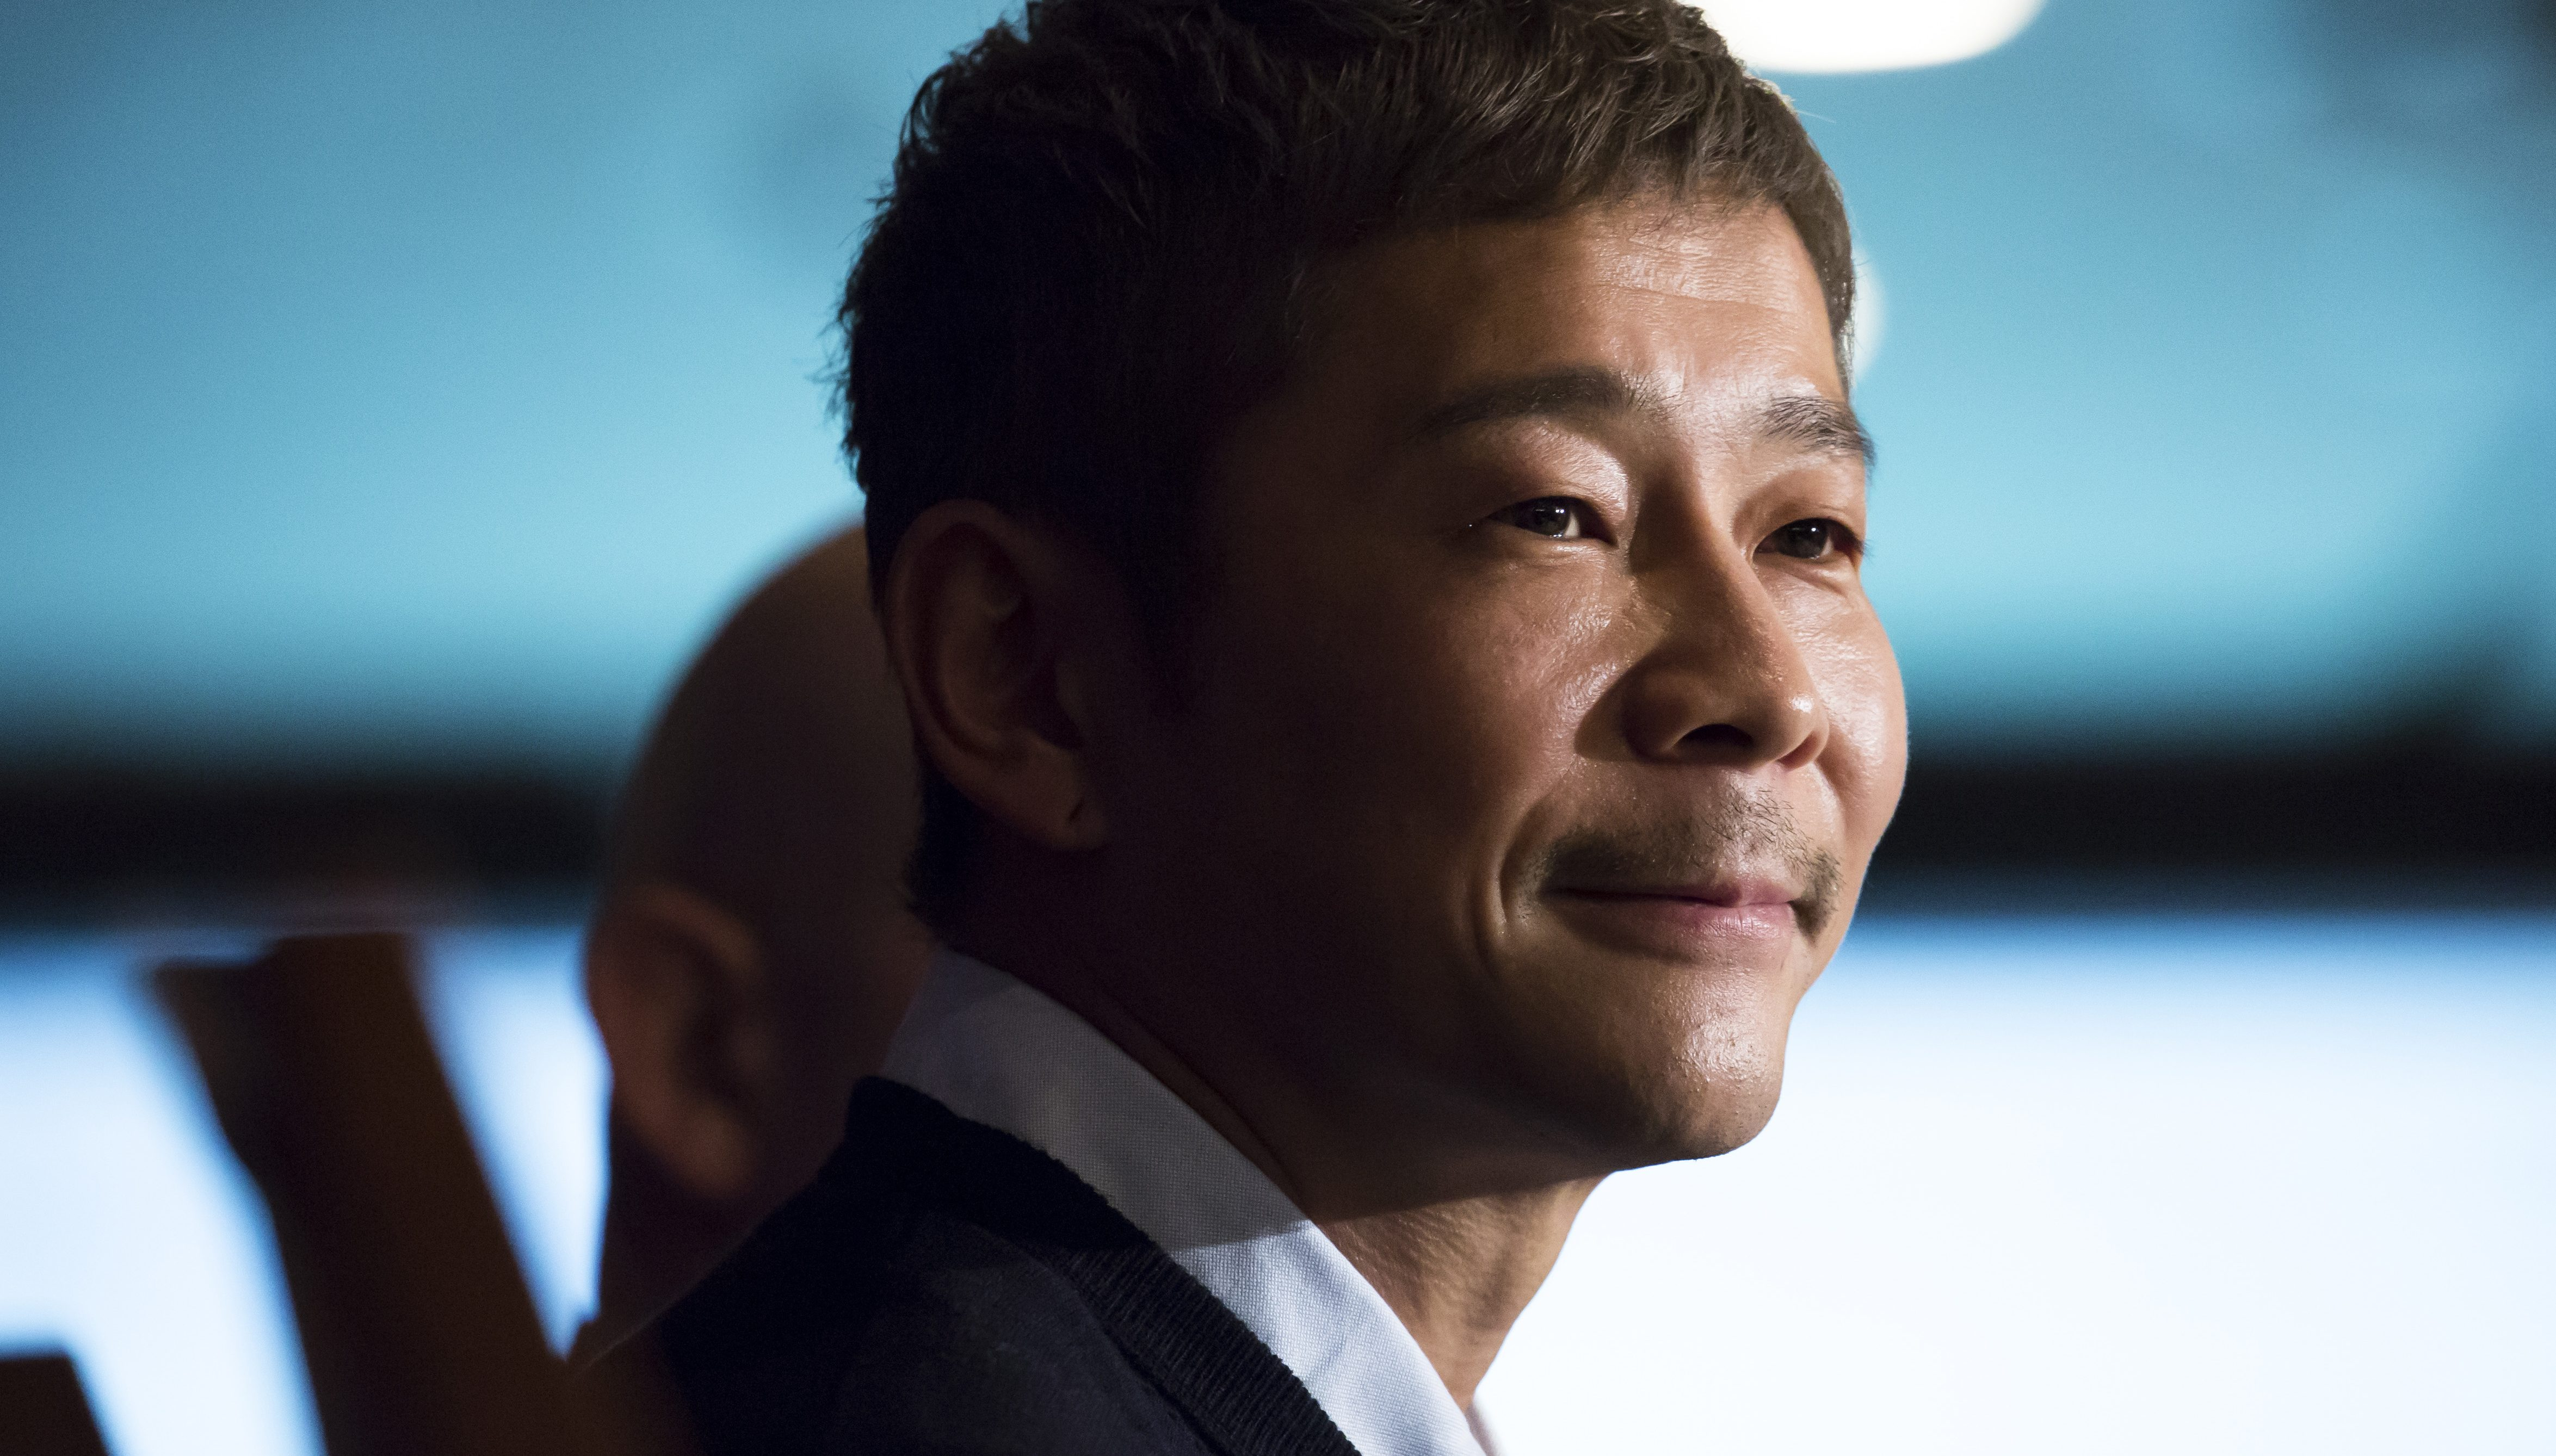 Yusaku Maezawa attends a news conference in Tokyo, Japan, on Oct. 9, 2018.